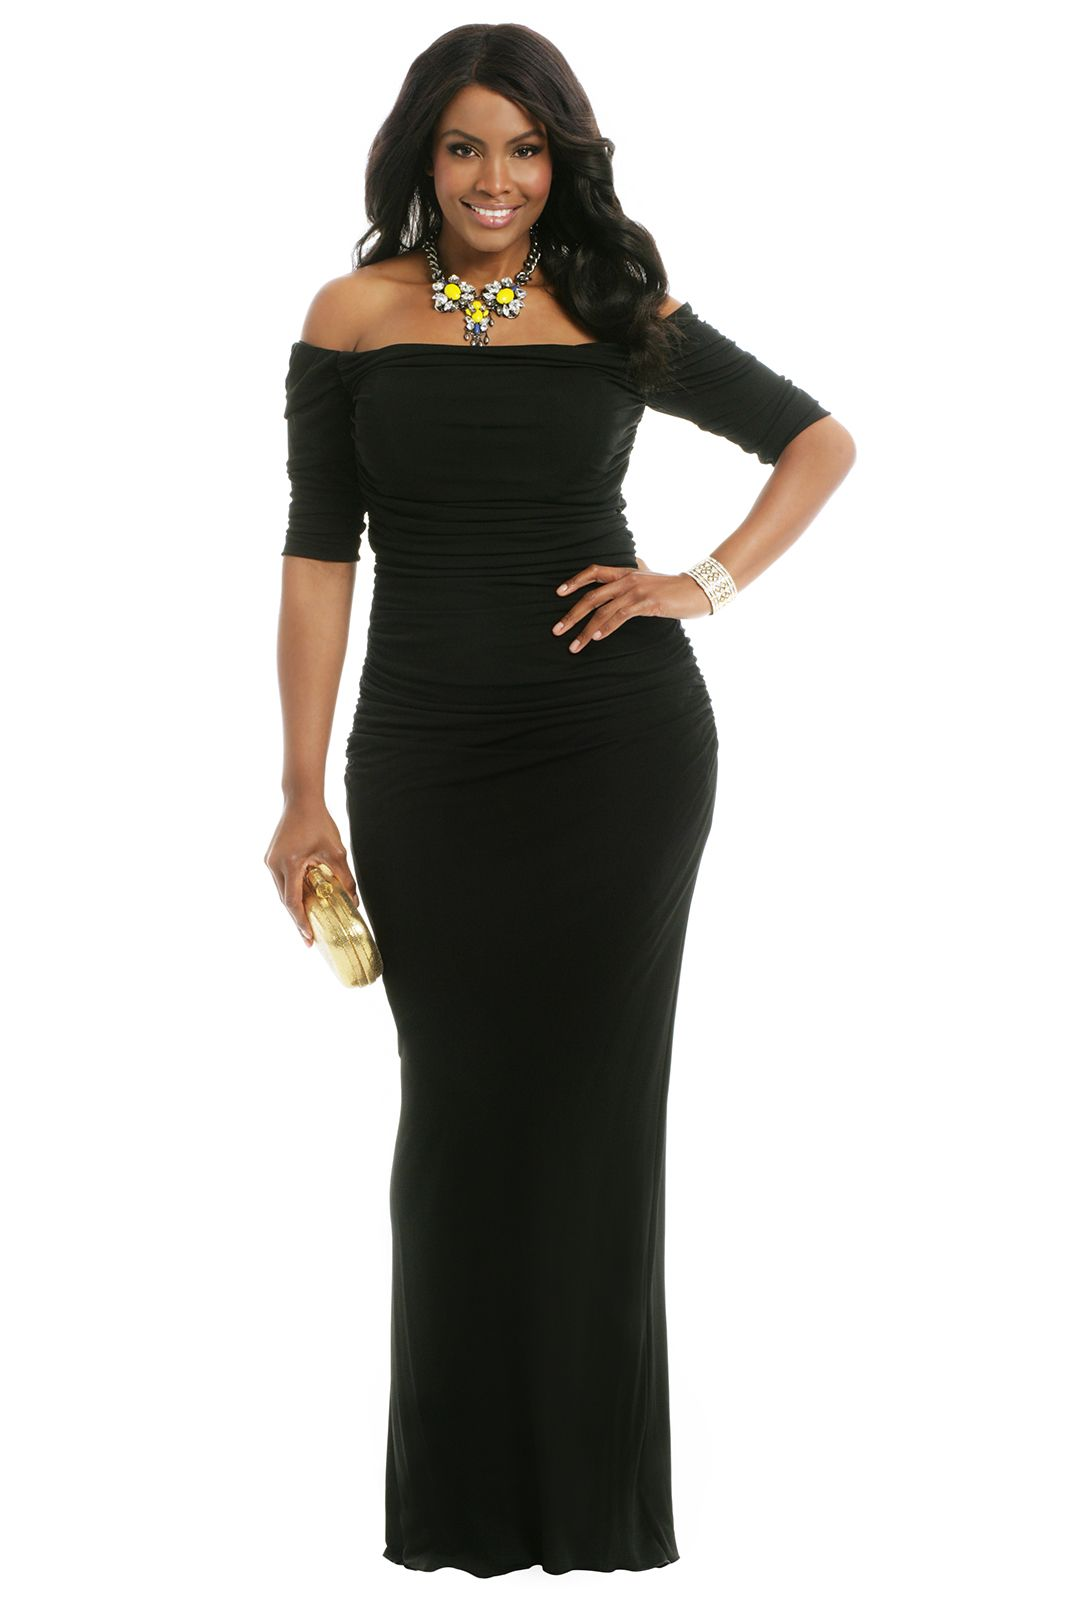 ac6555dfdd7 ... Floor-length Jersey Plus Size Evening Dress.  curvy  sexy  thick  Classic and gorgeous curvy woman  lt 3